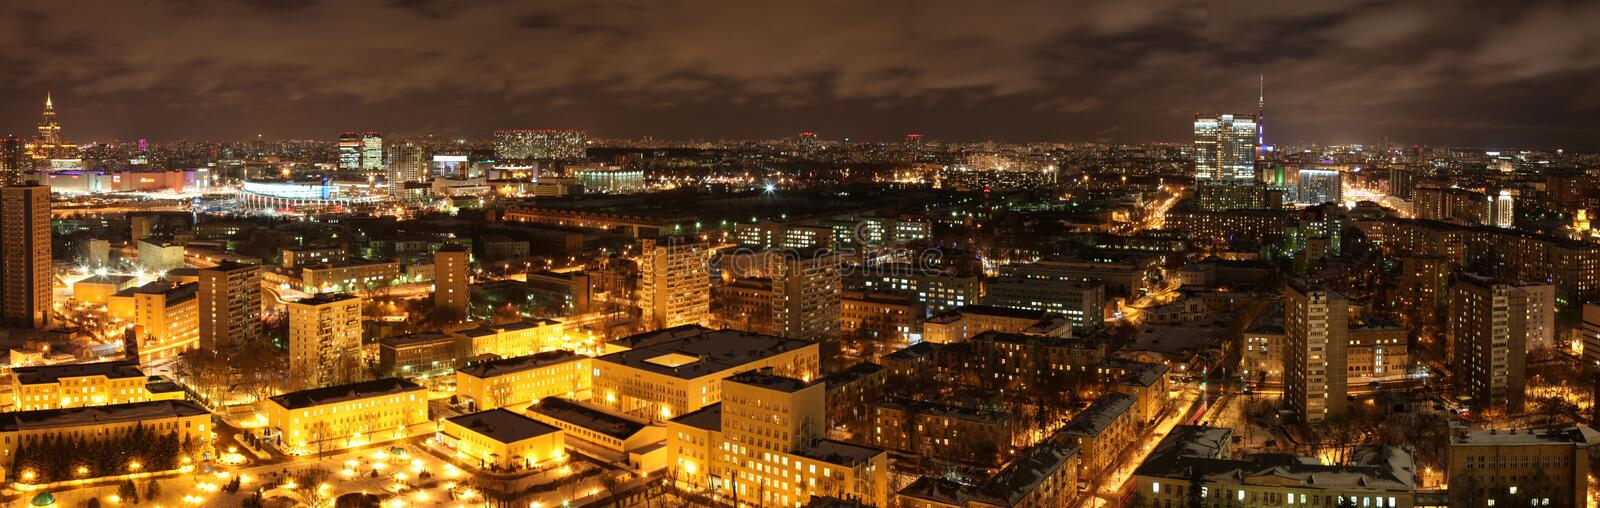 Moscow night royalty free stock image